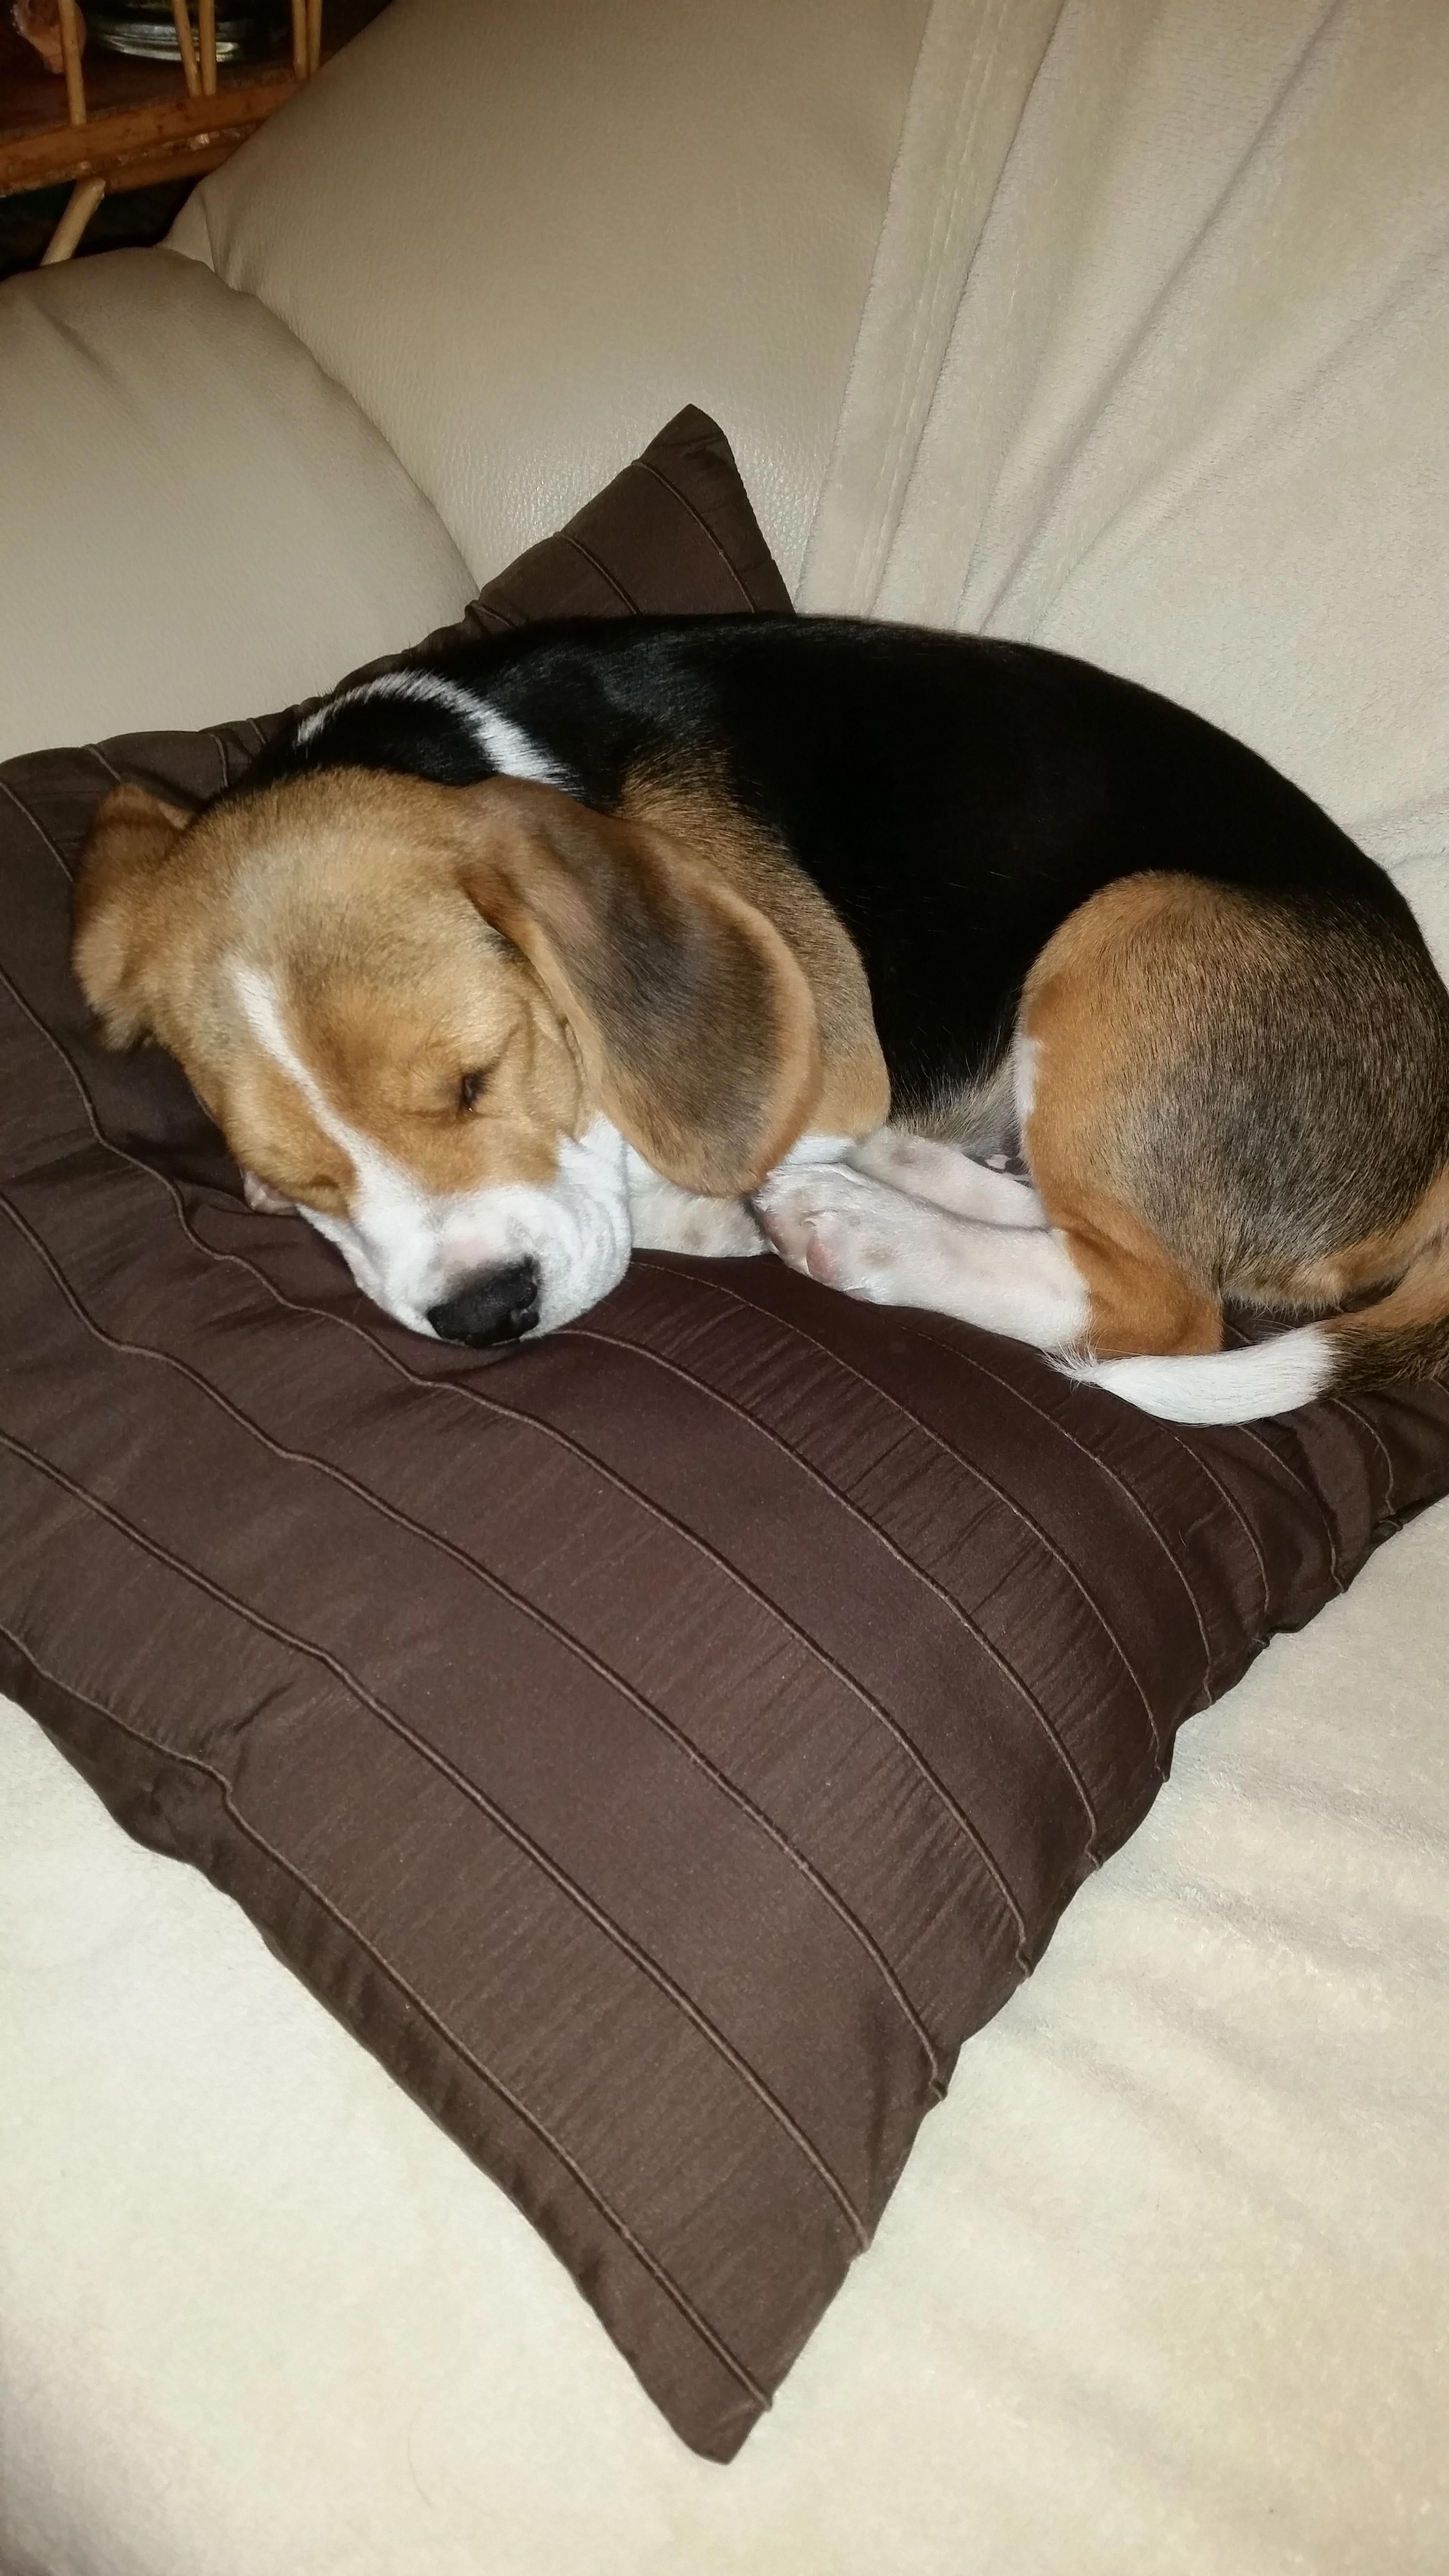 Sweet And Innocent Until They Wake Up Lol Beagle Beagle Puppy